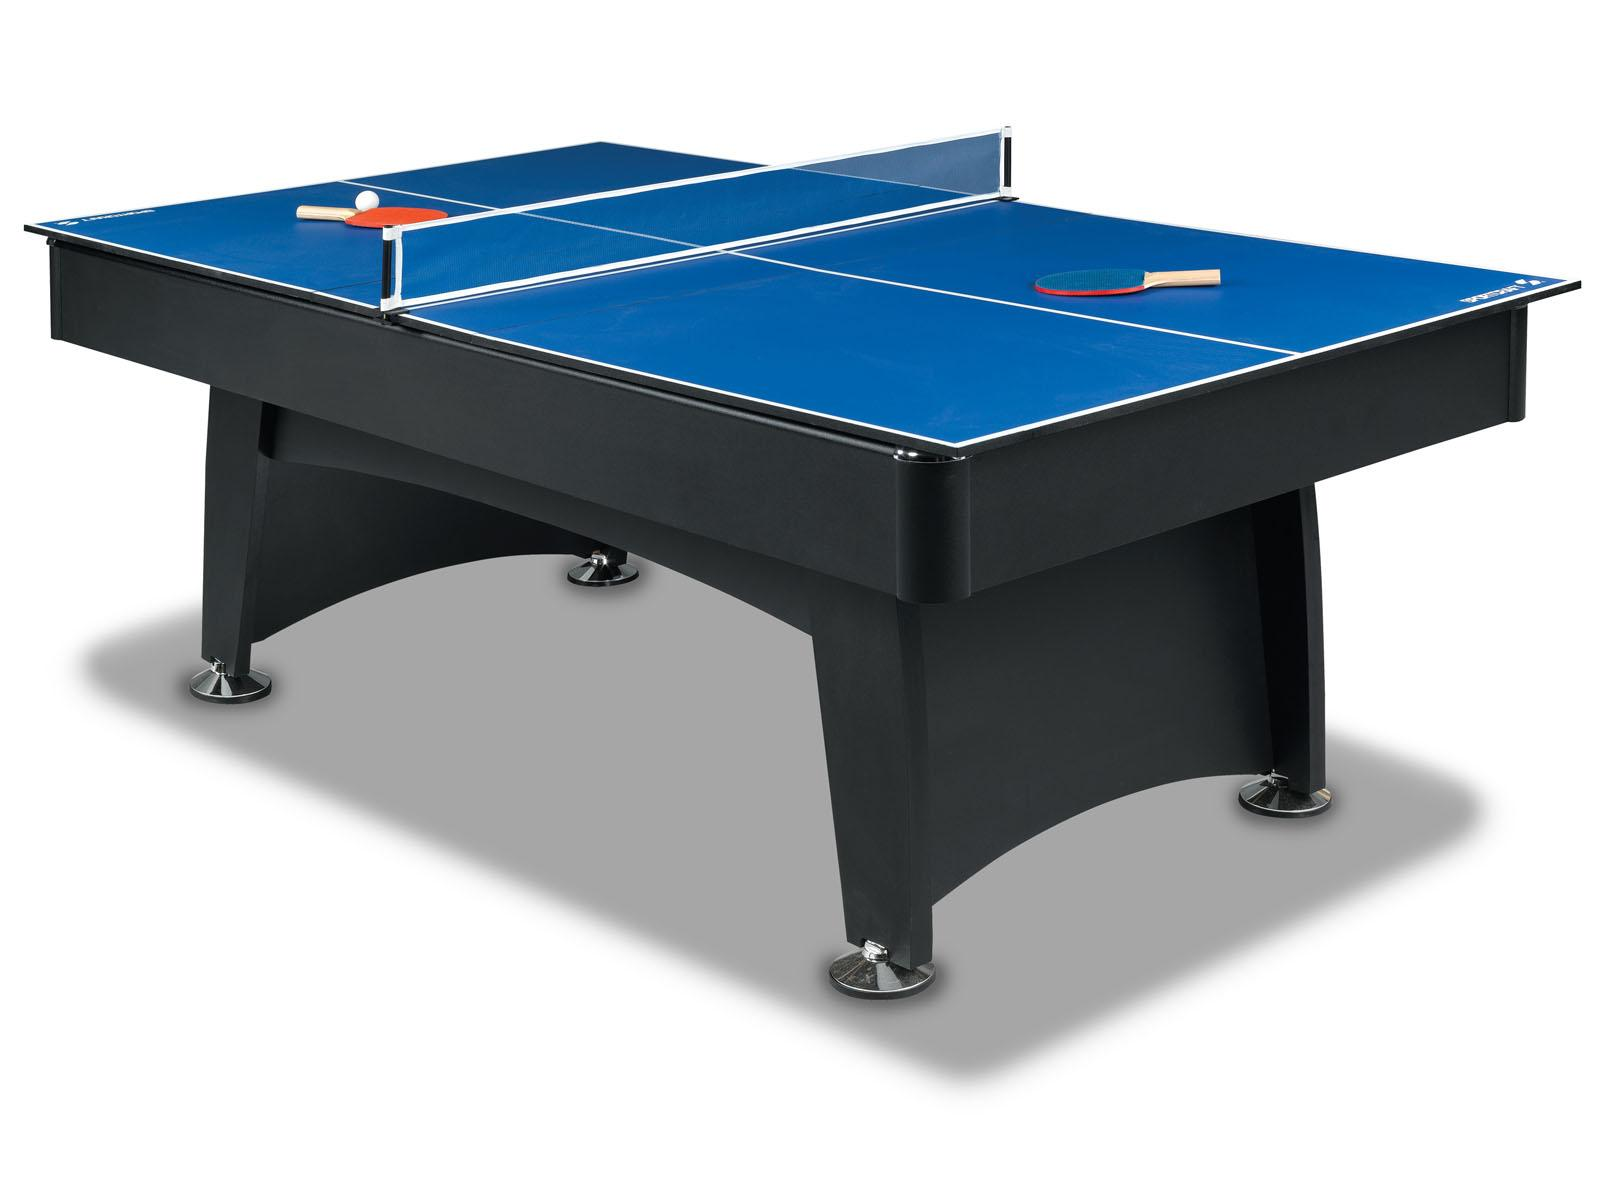 84 fullerton billiard table with table tennis top 13310271 shopping great - Pool table table tennis ...